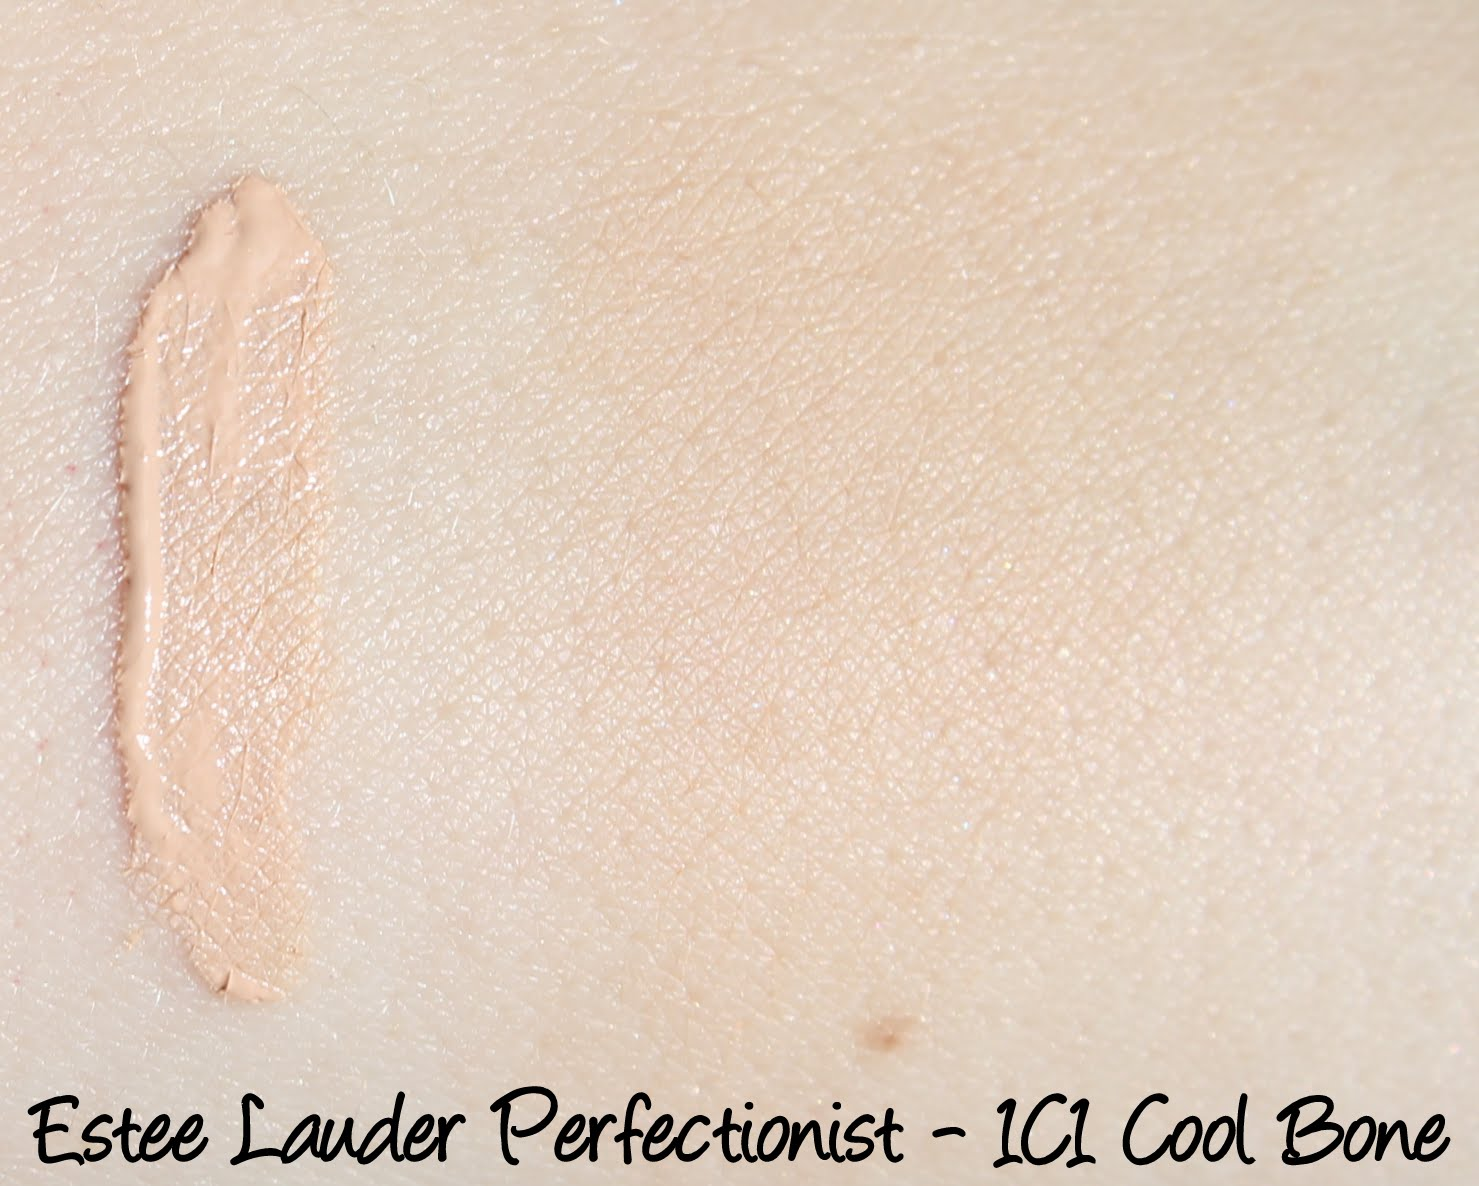 Perfectionist Youth-Infusing Brightening Serum + Concealer by Estée Lauder #6